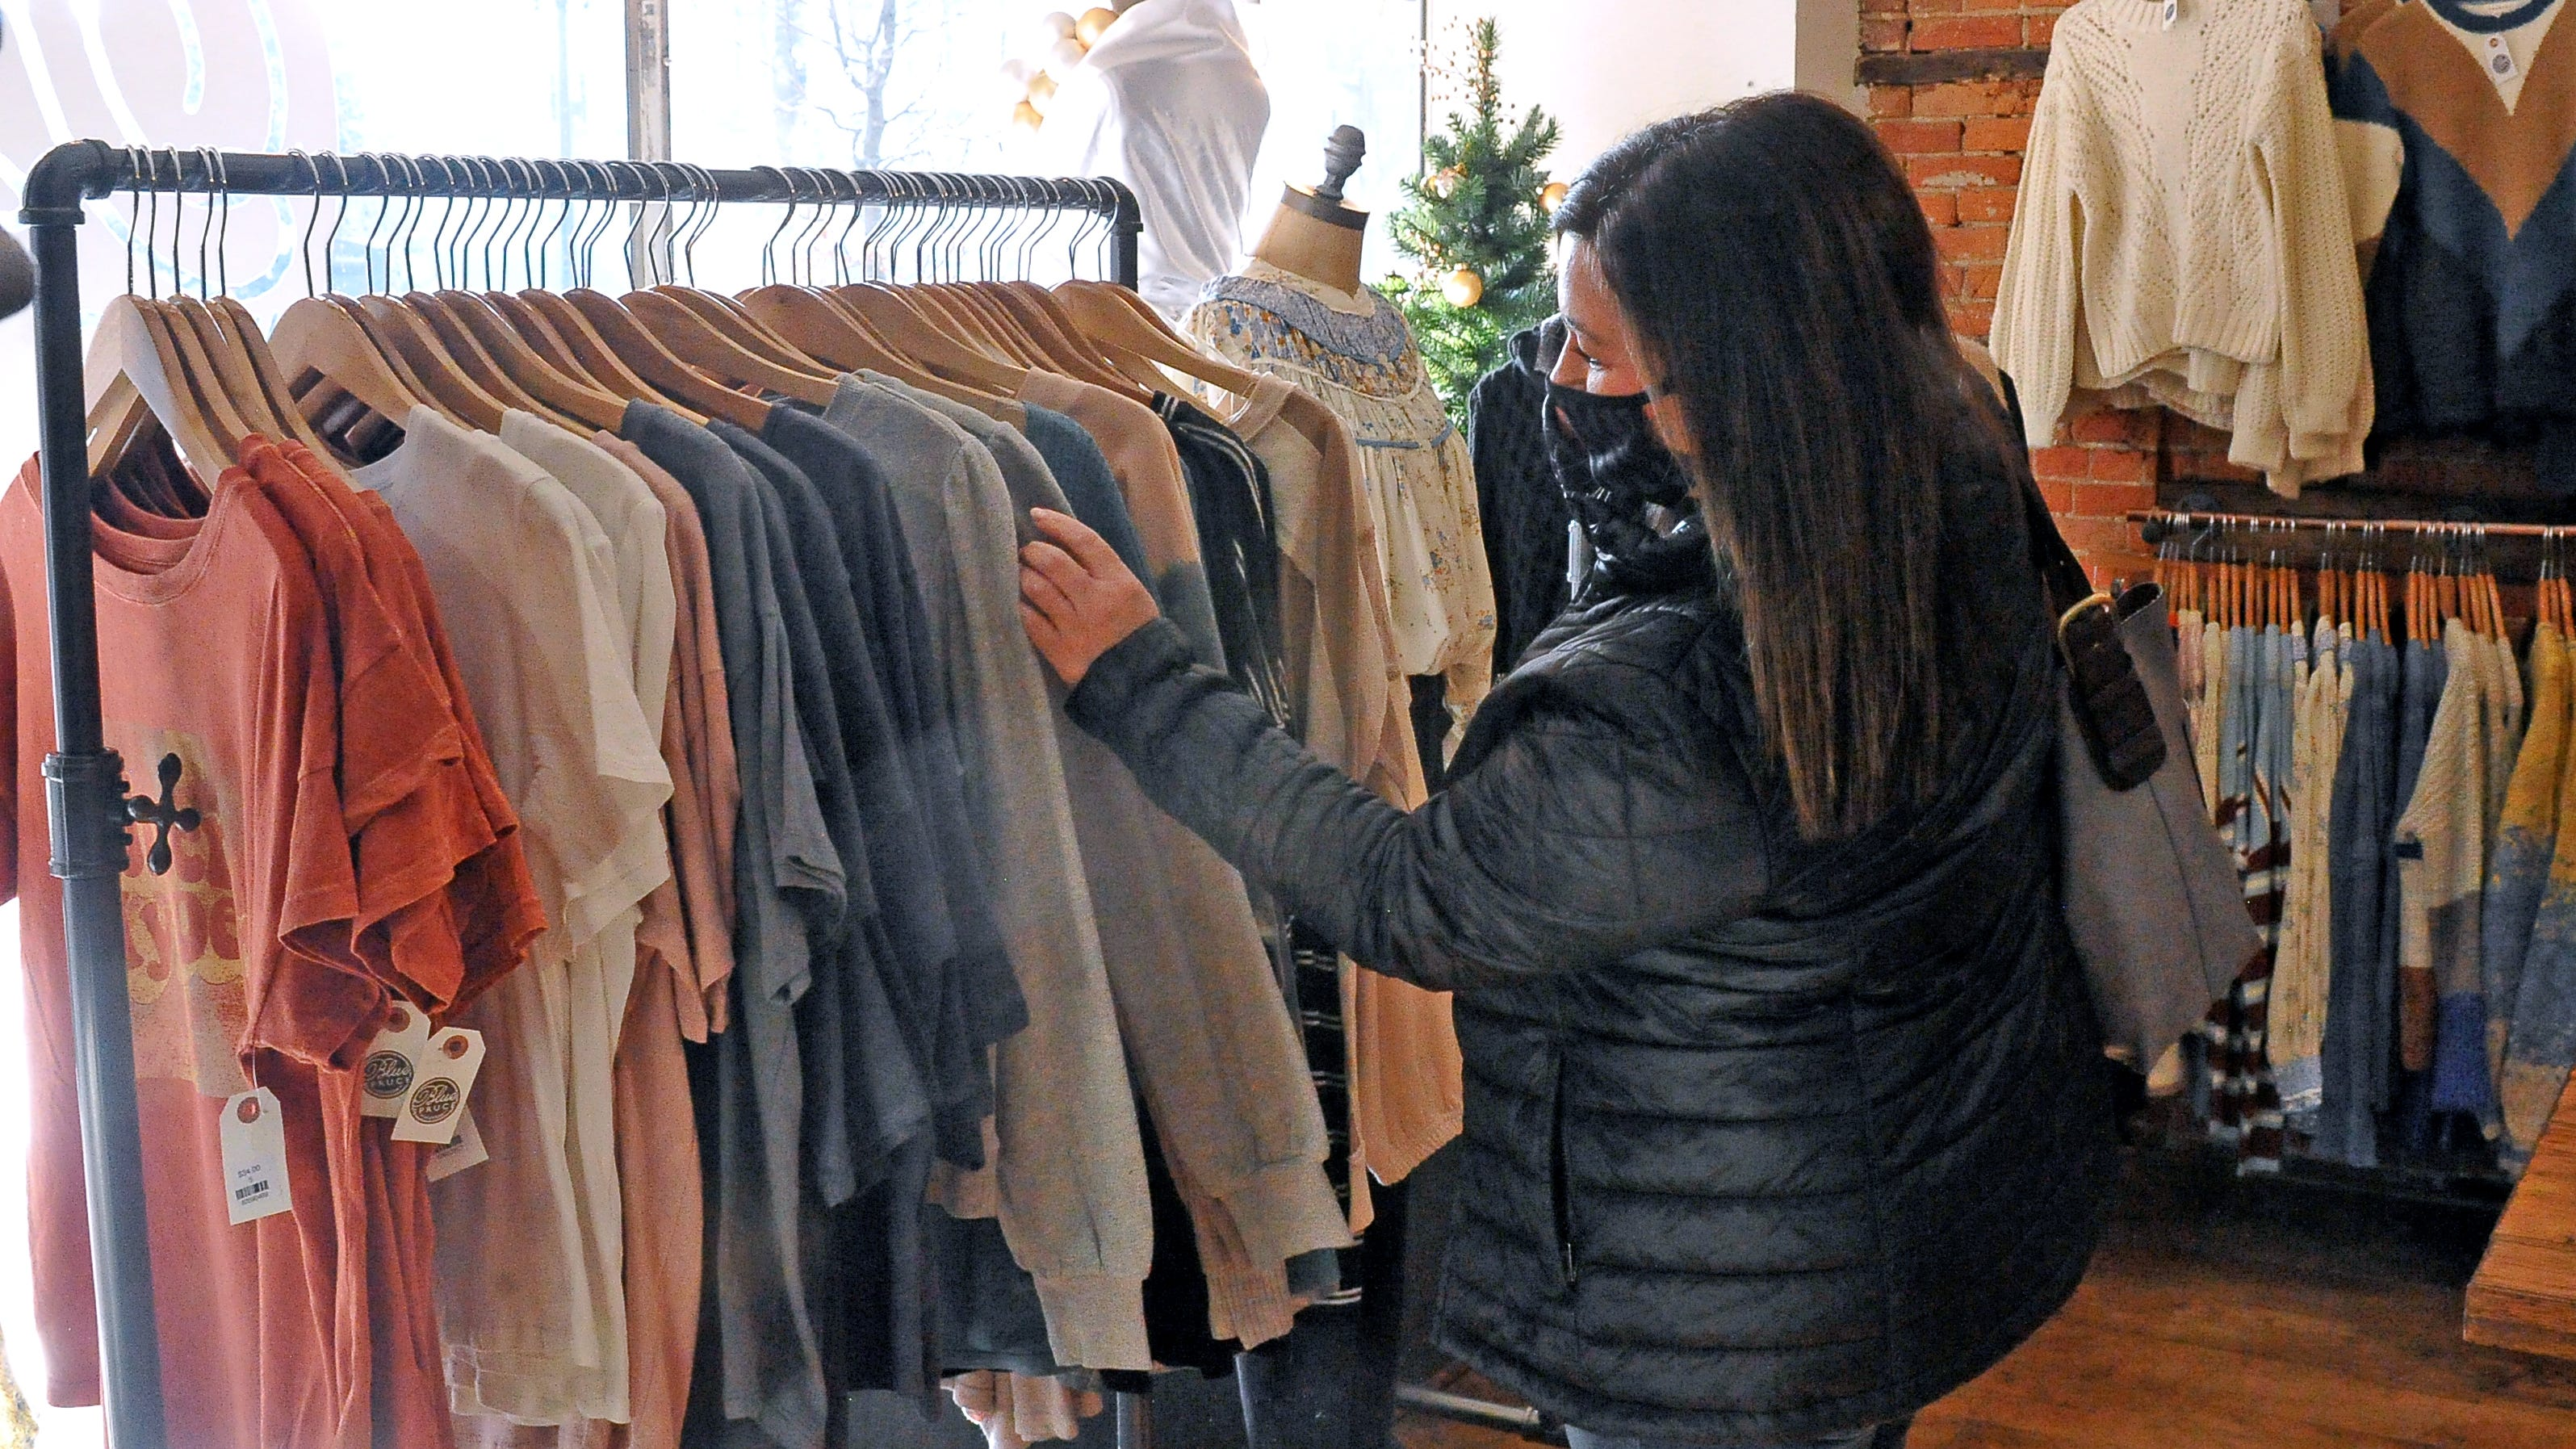 Susan Crilow, of Fredericksburg, checks out the sweater rack in the Blue Spruce on East Liberty Street in downtown Wooster.